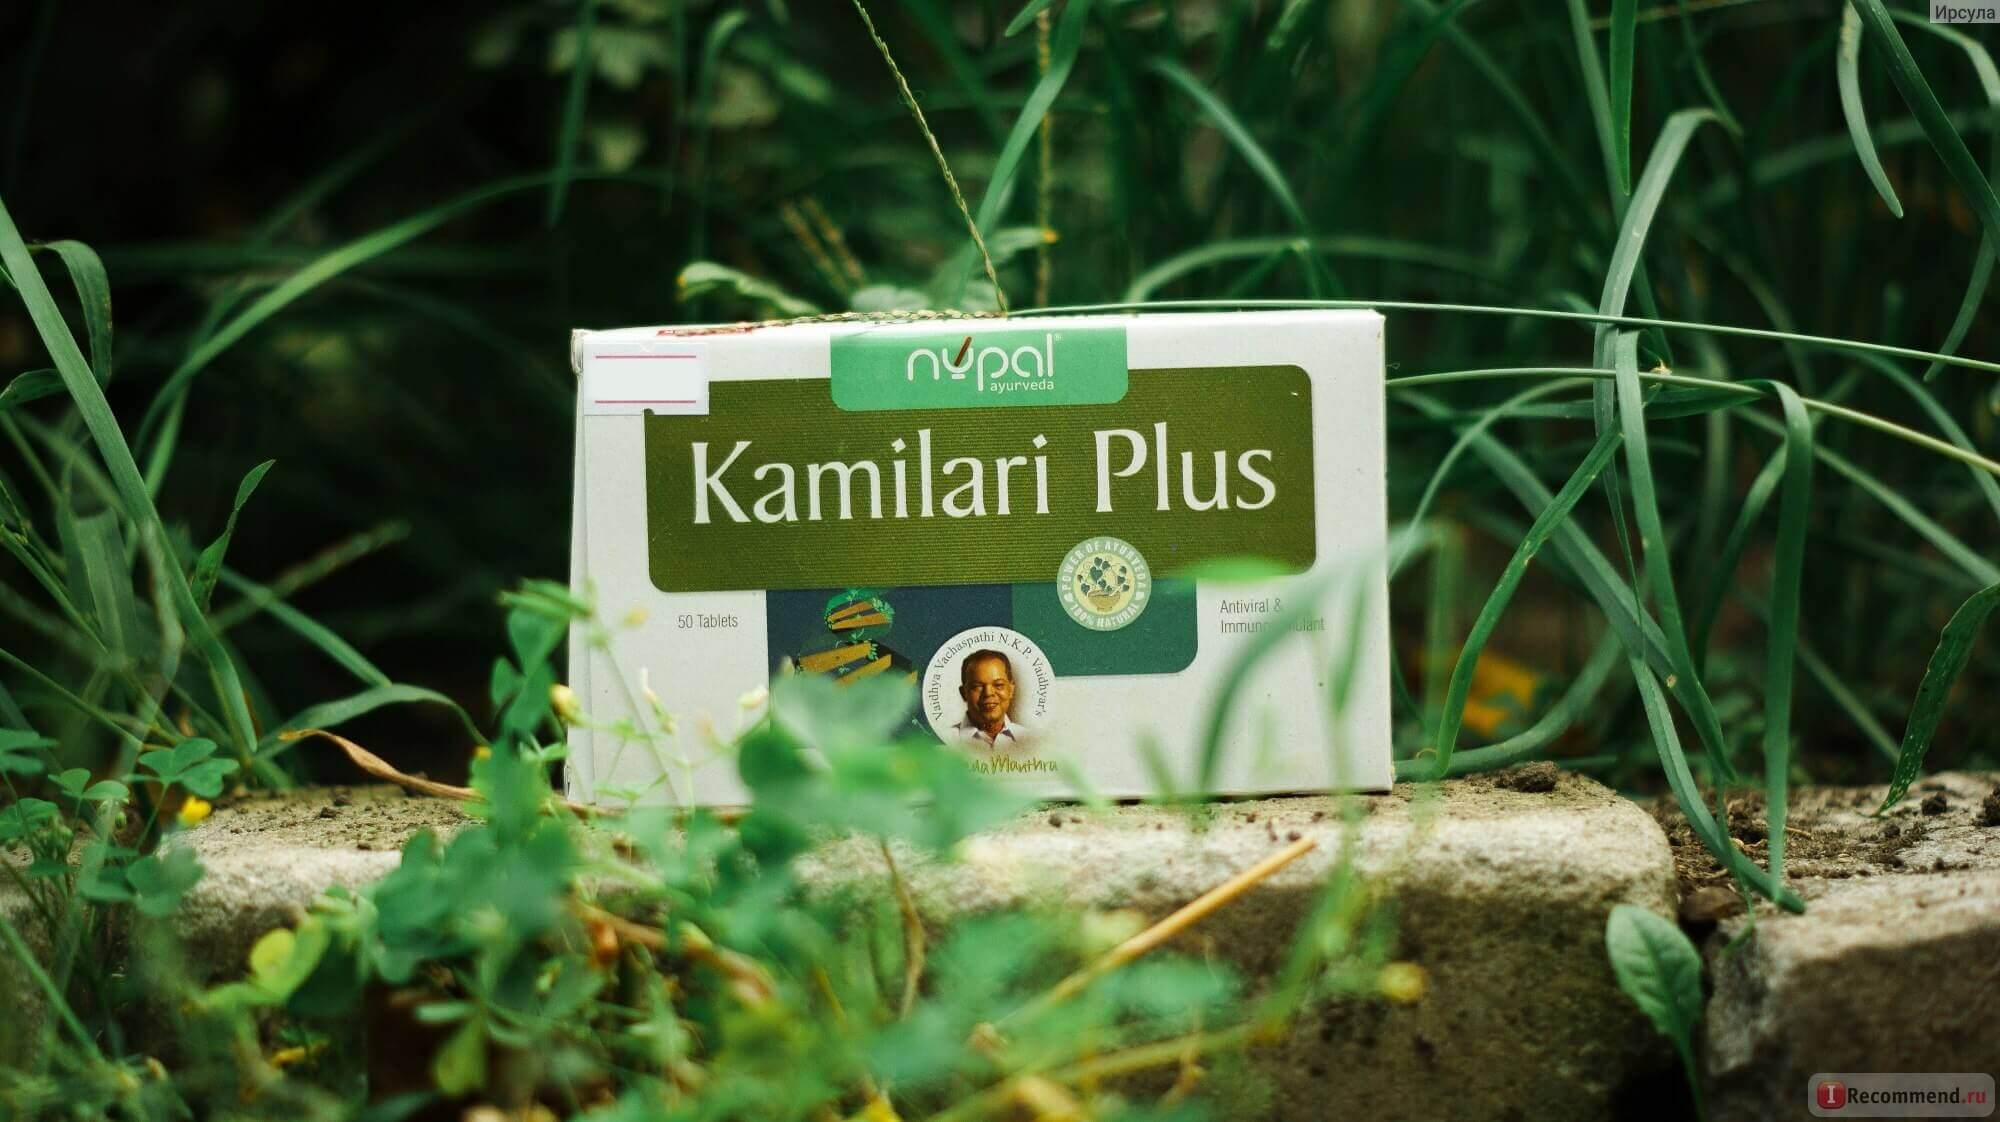 Камилари Плюс (Kamilari Plus, Nupal Remedies) ॐ Бутик ROSA